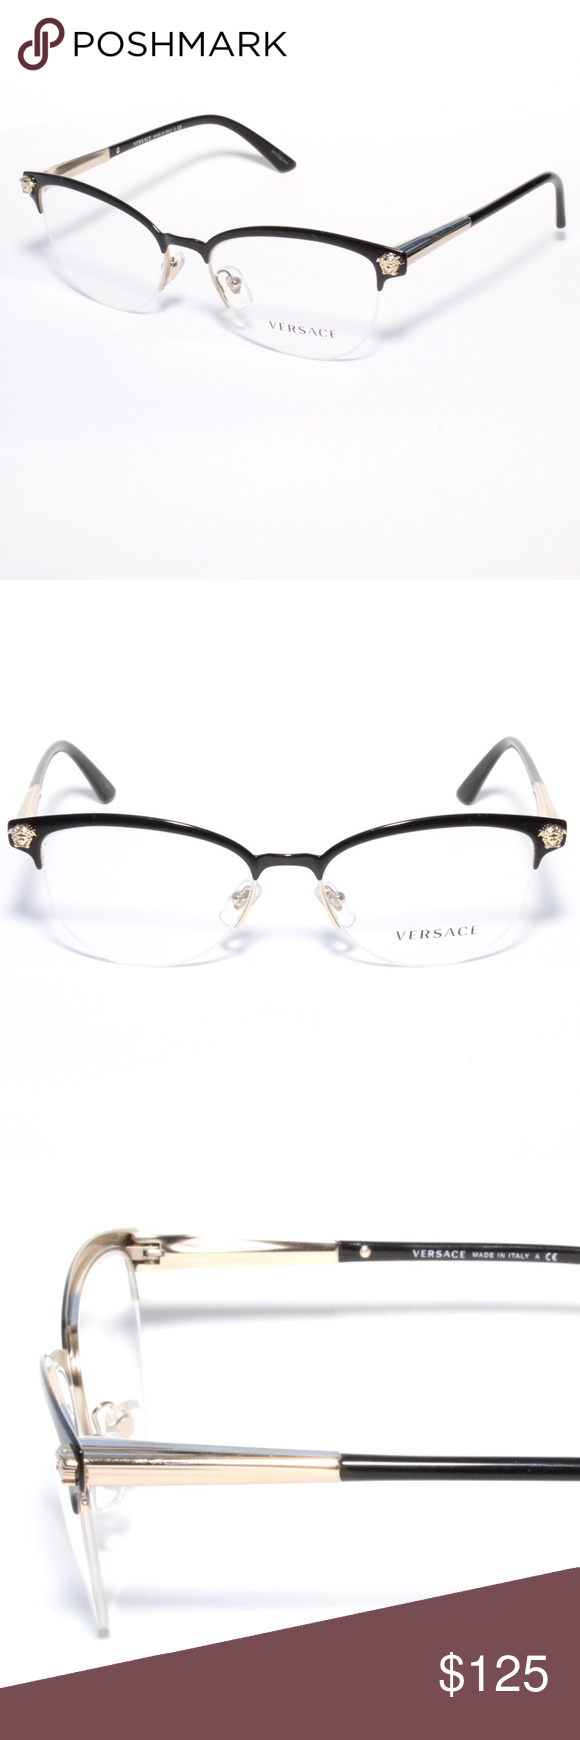 68807a1ce9e6 Versace Eyeglasses 1235 1371 53/17 Black/ PaleGold Brand new 100% authentic Versace  Eyeglasses 1235 1371 53/17 Black/ Pale Gold Comes with Generic Case, ...